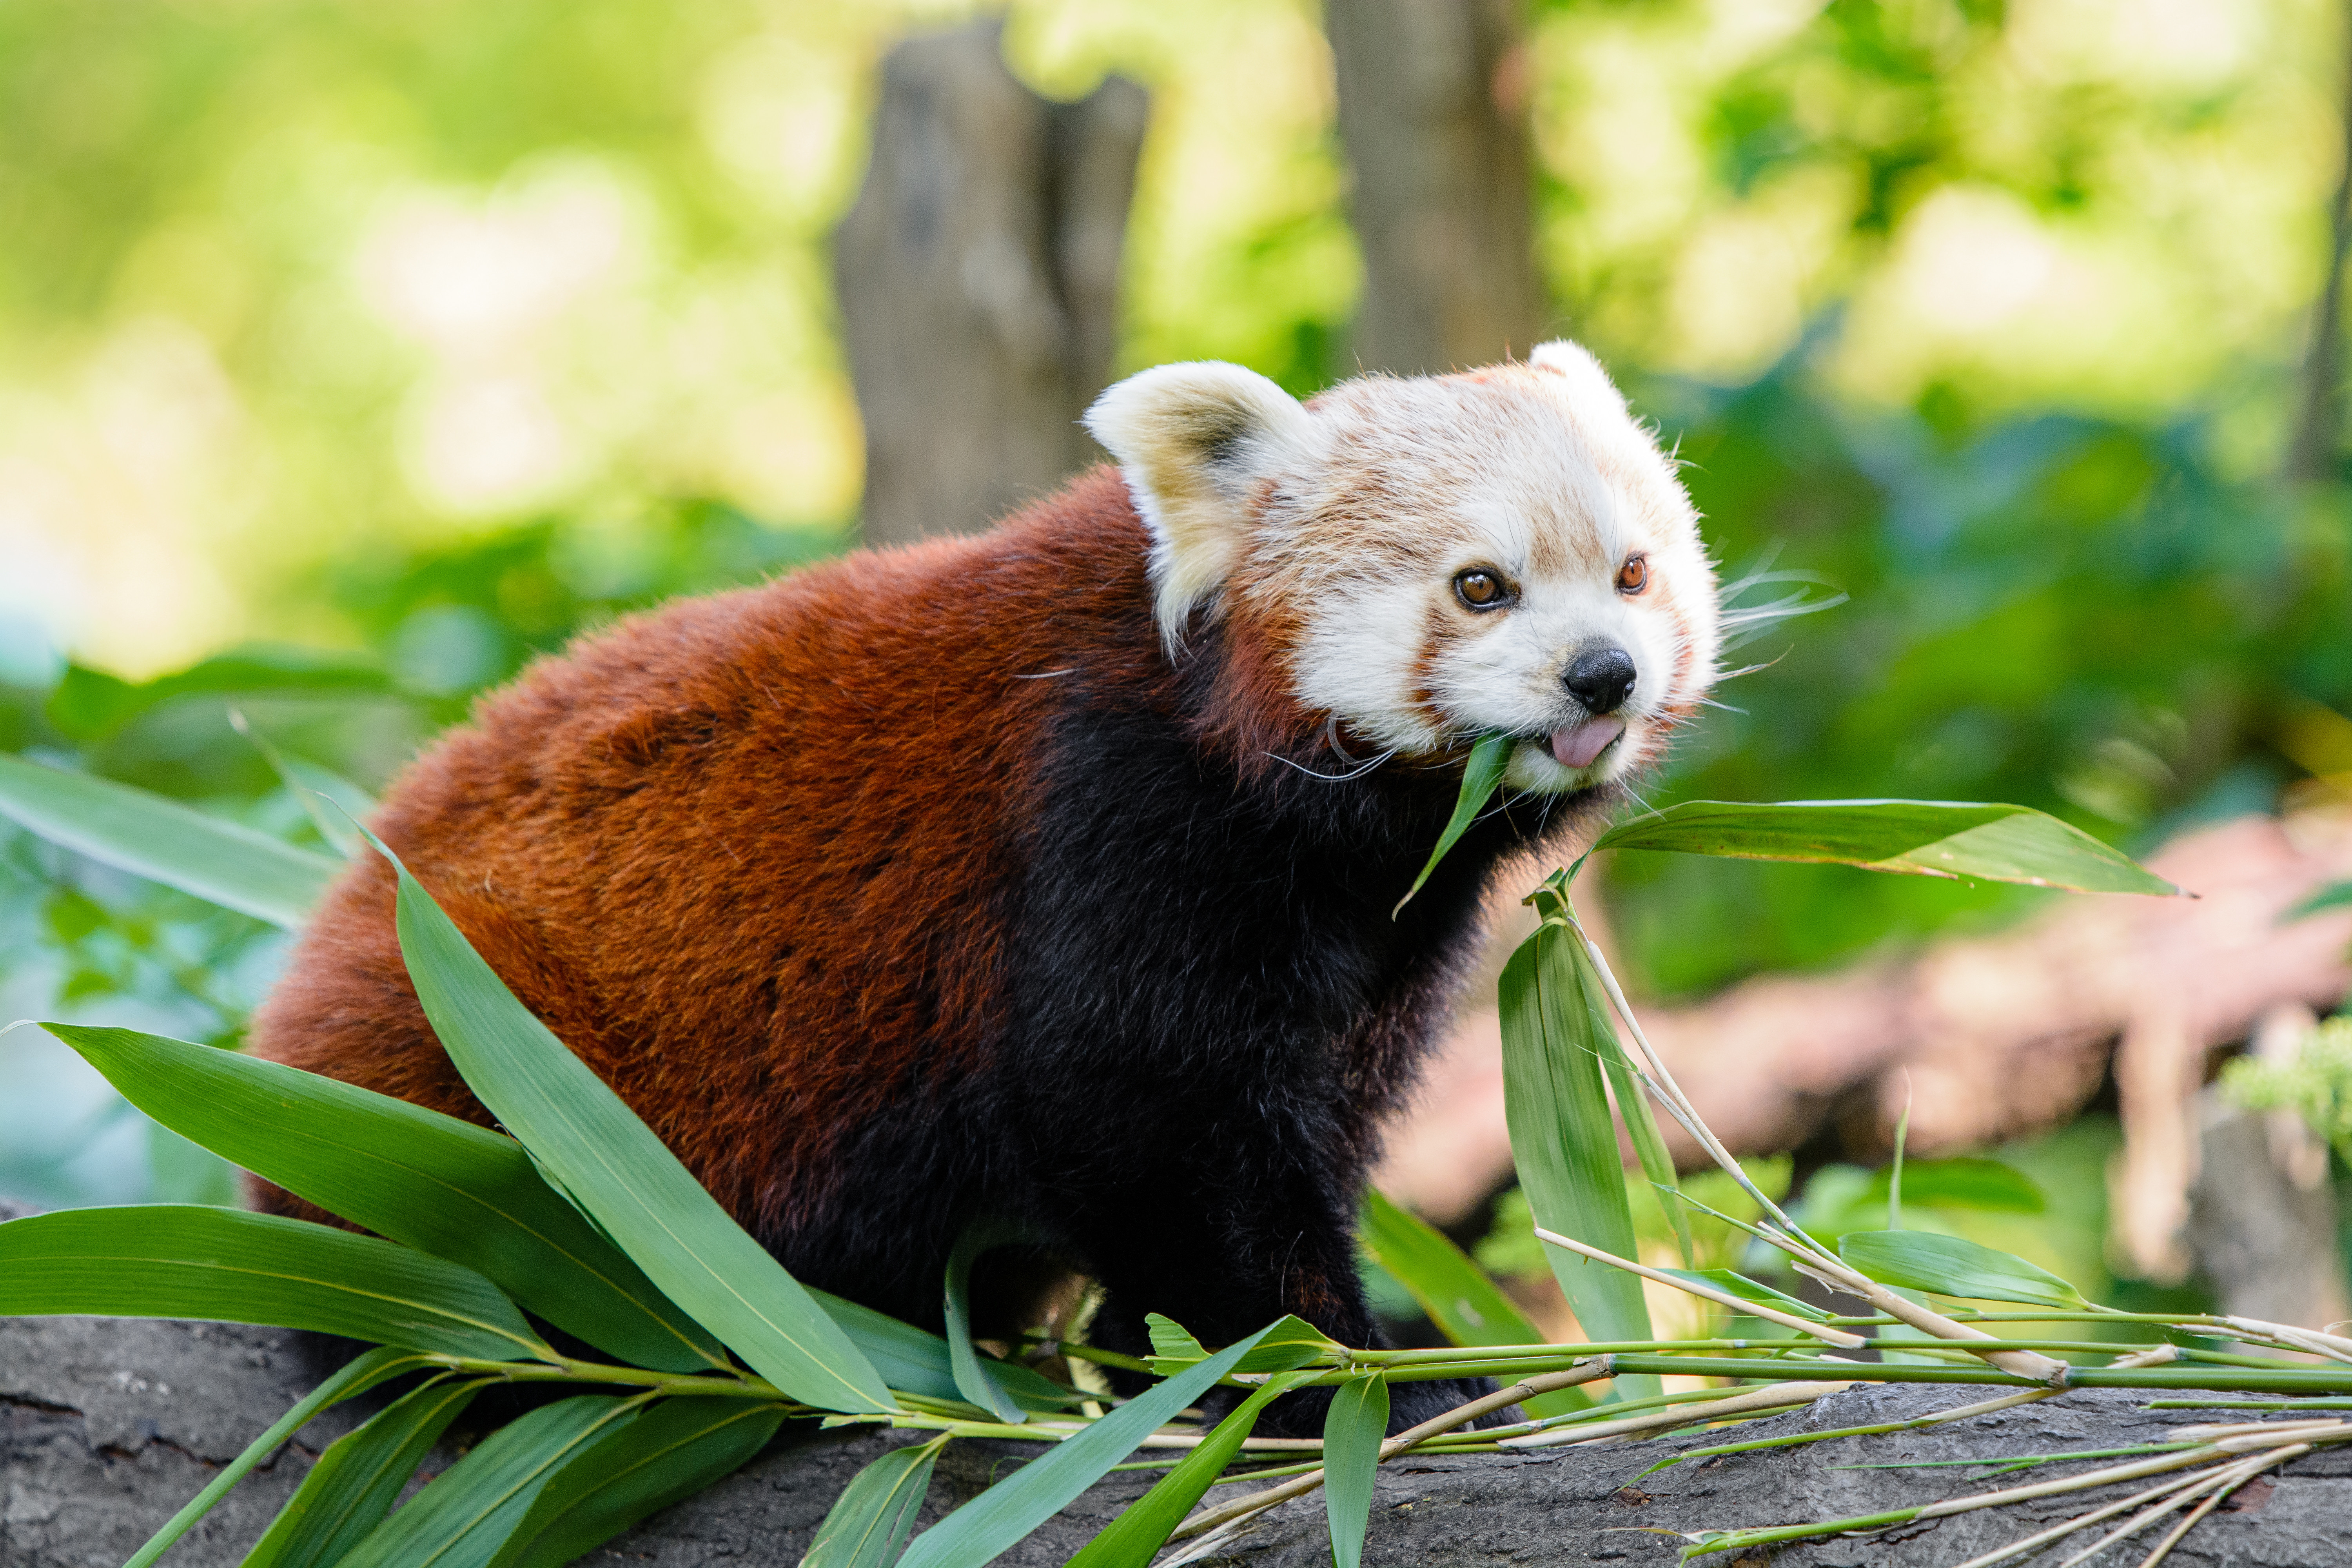 119409 download wallpaper Animals, Red Panda, Panda, Protruding Tongue, Tongue Stuck Out, Funny screensavers and pictures for free